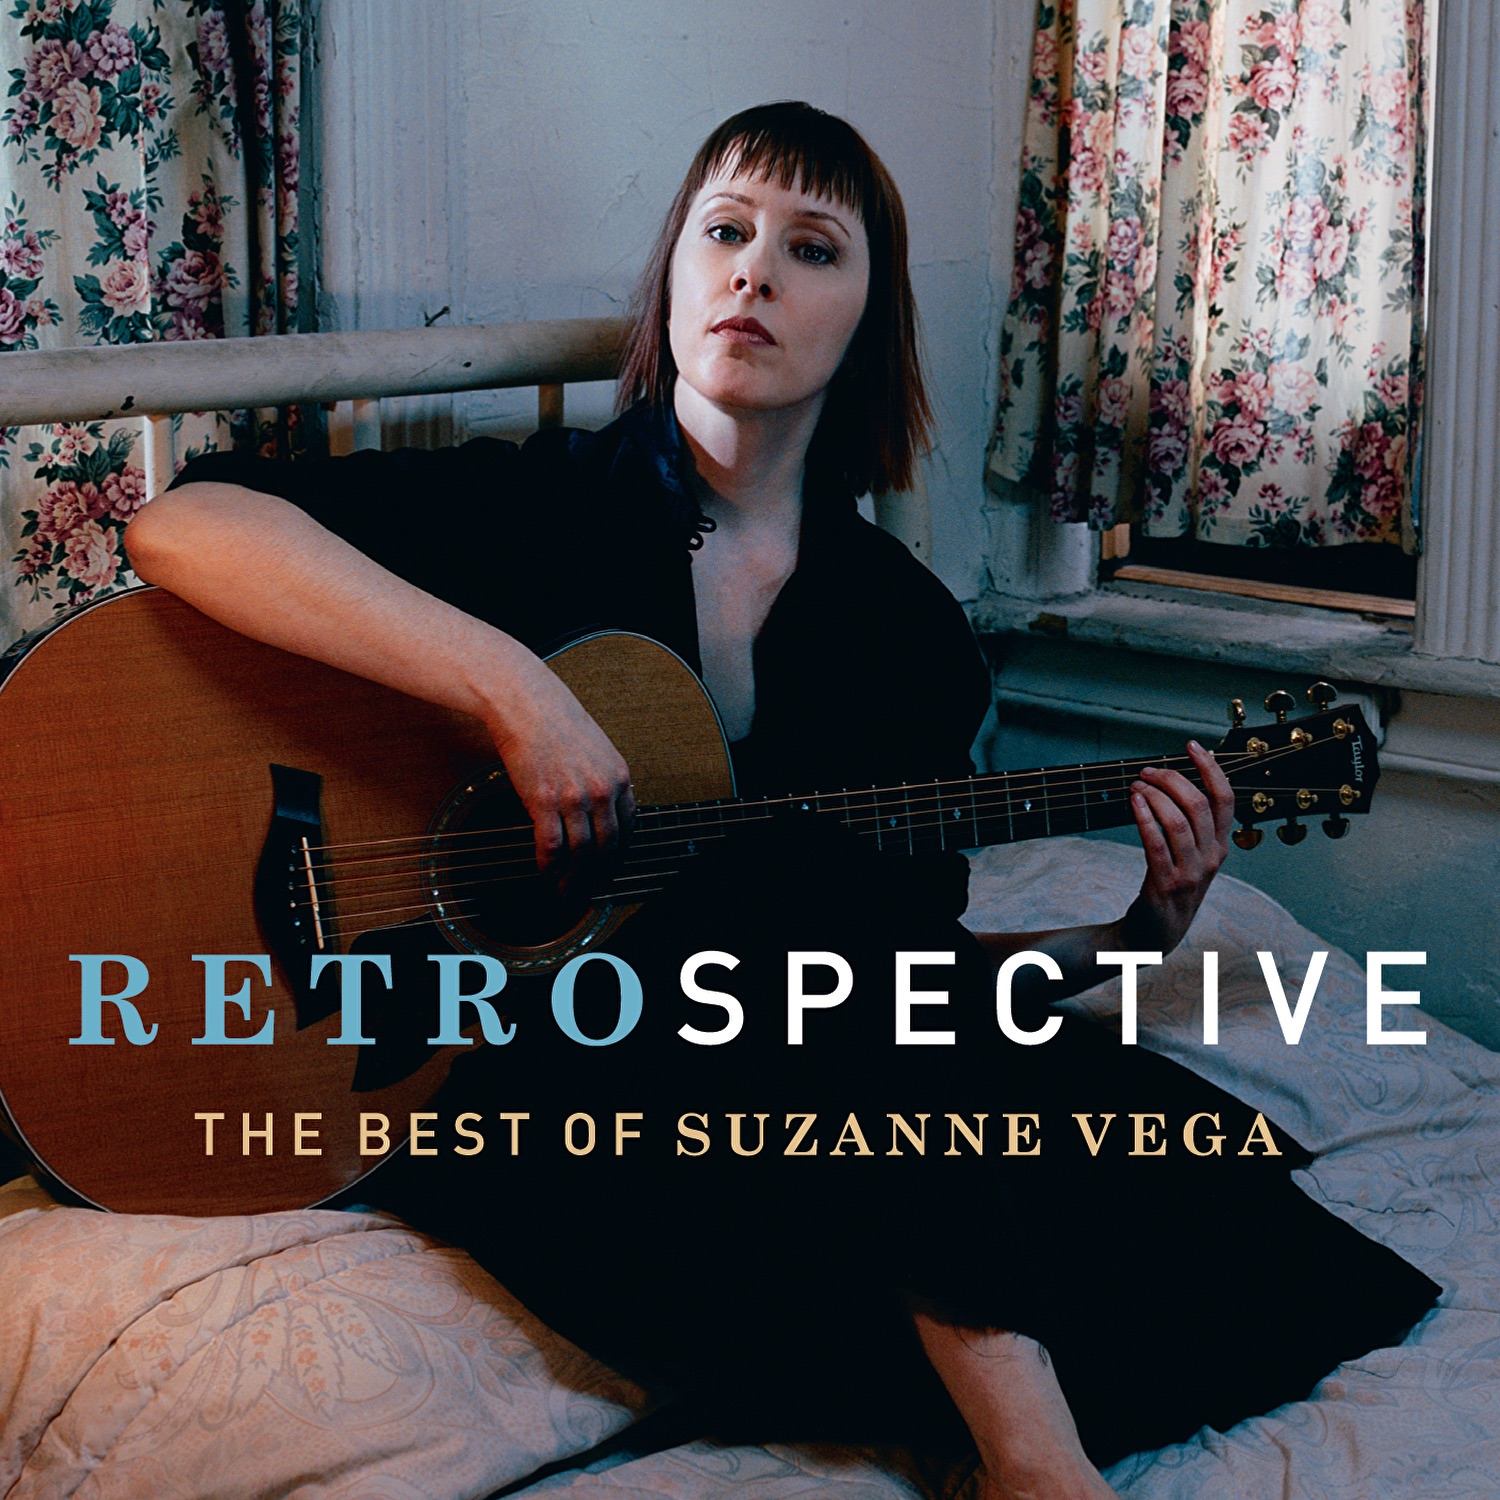 Art for Luka by Suzanne Vega